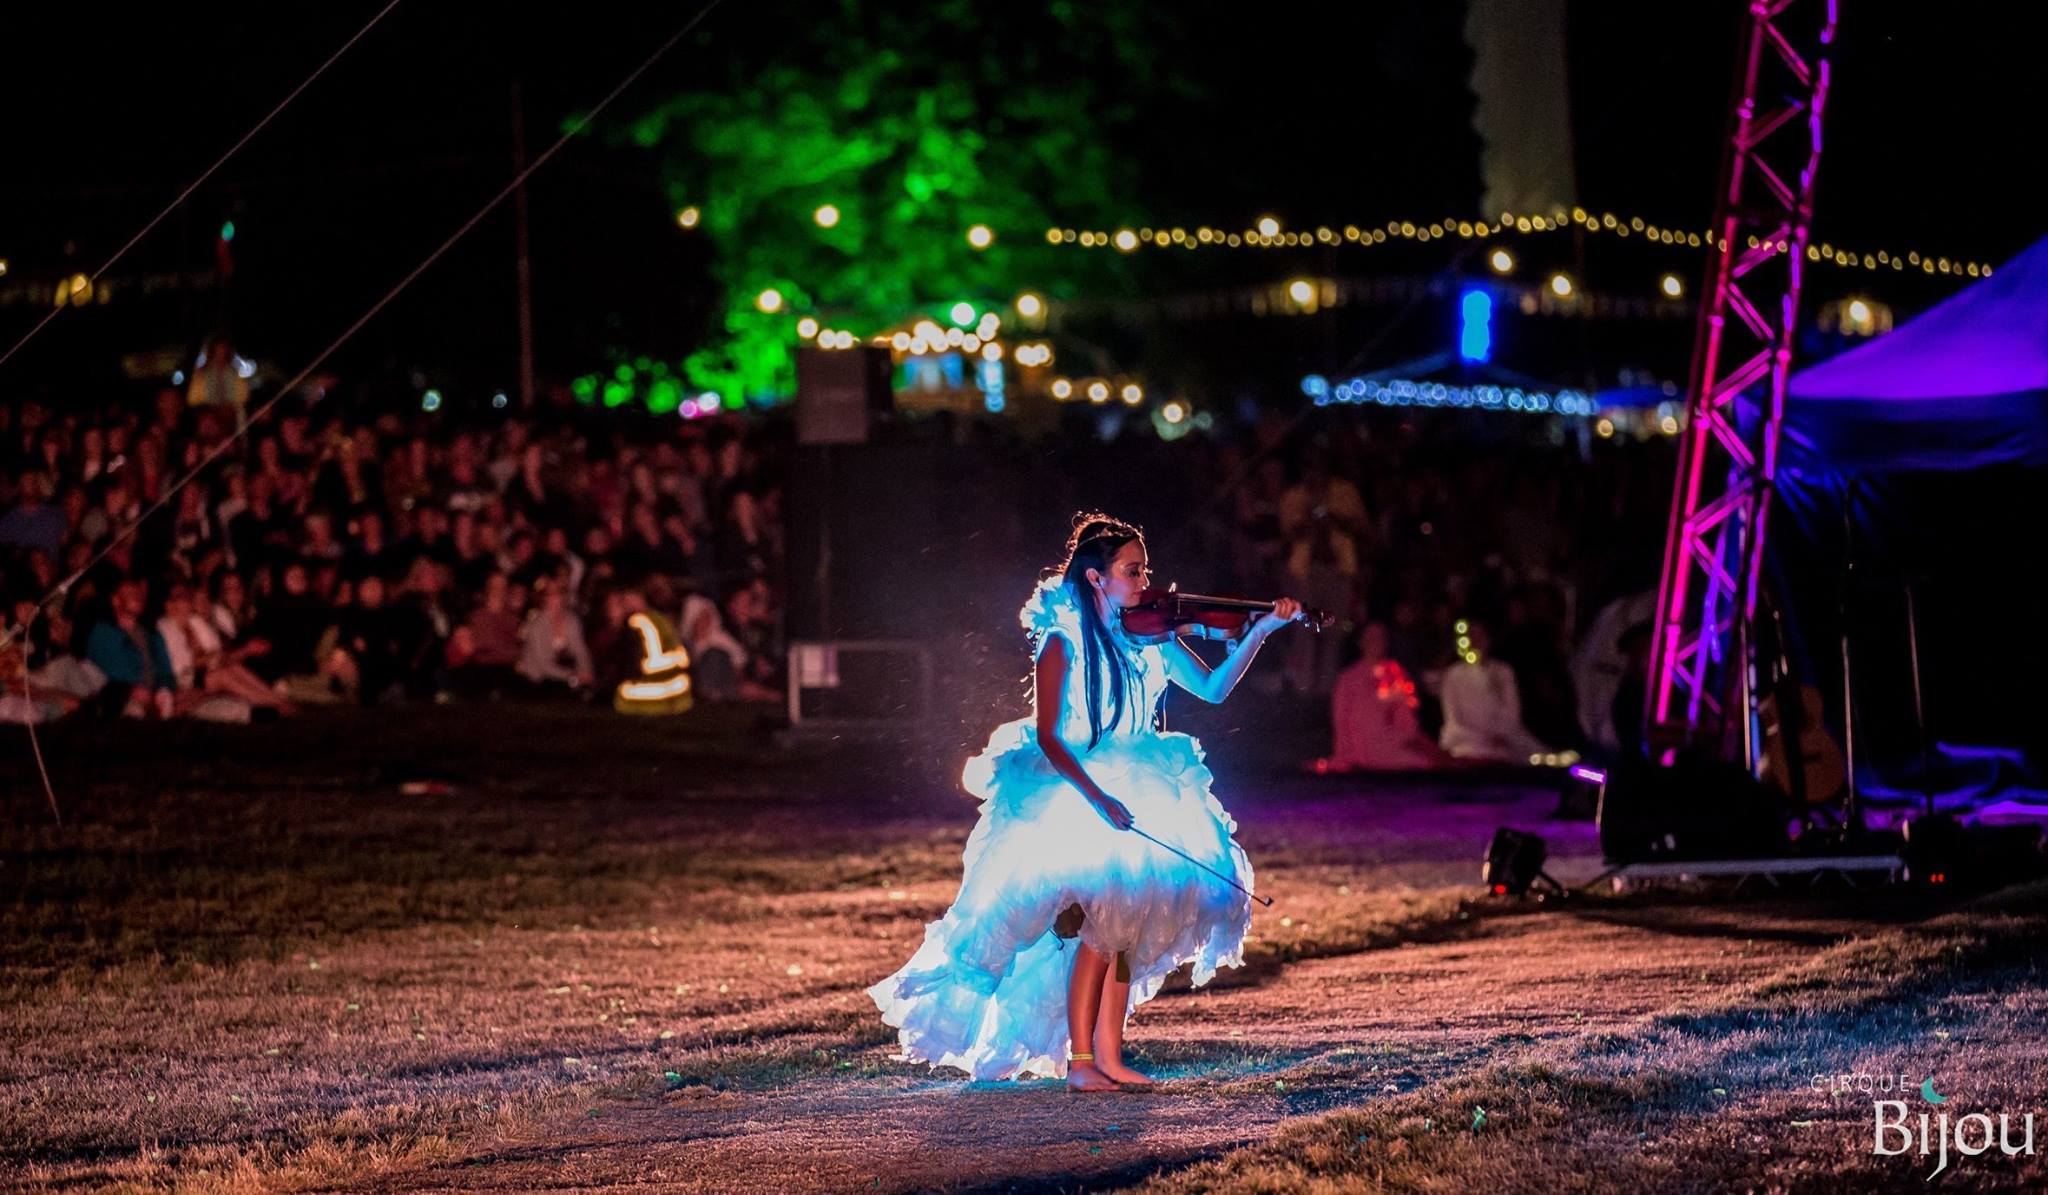 Wilderness Festival 2016  : Diana Yukawa in the spectacular light up dress.